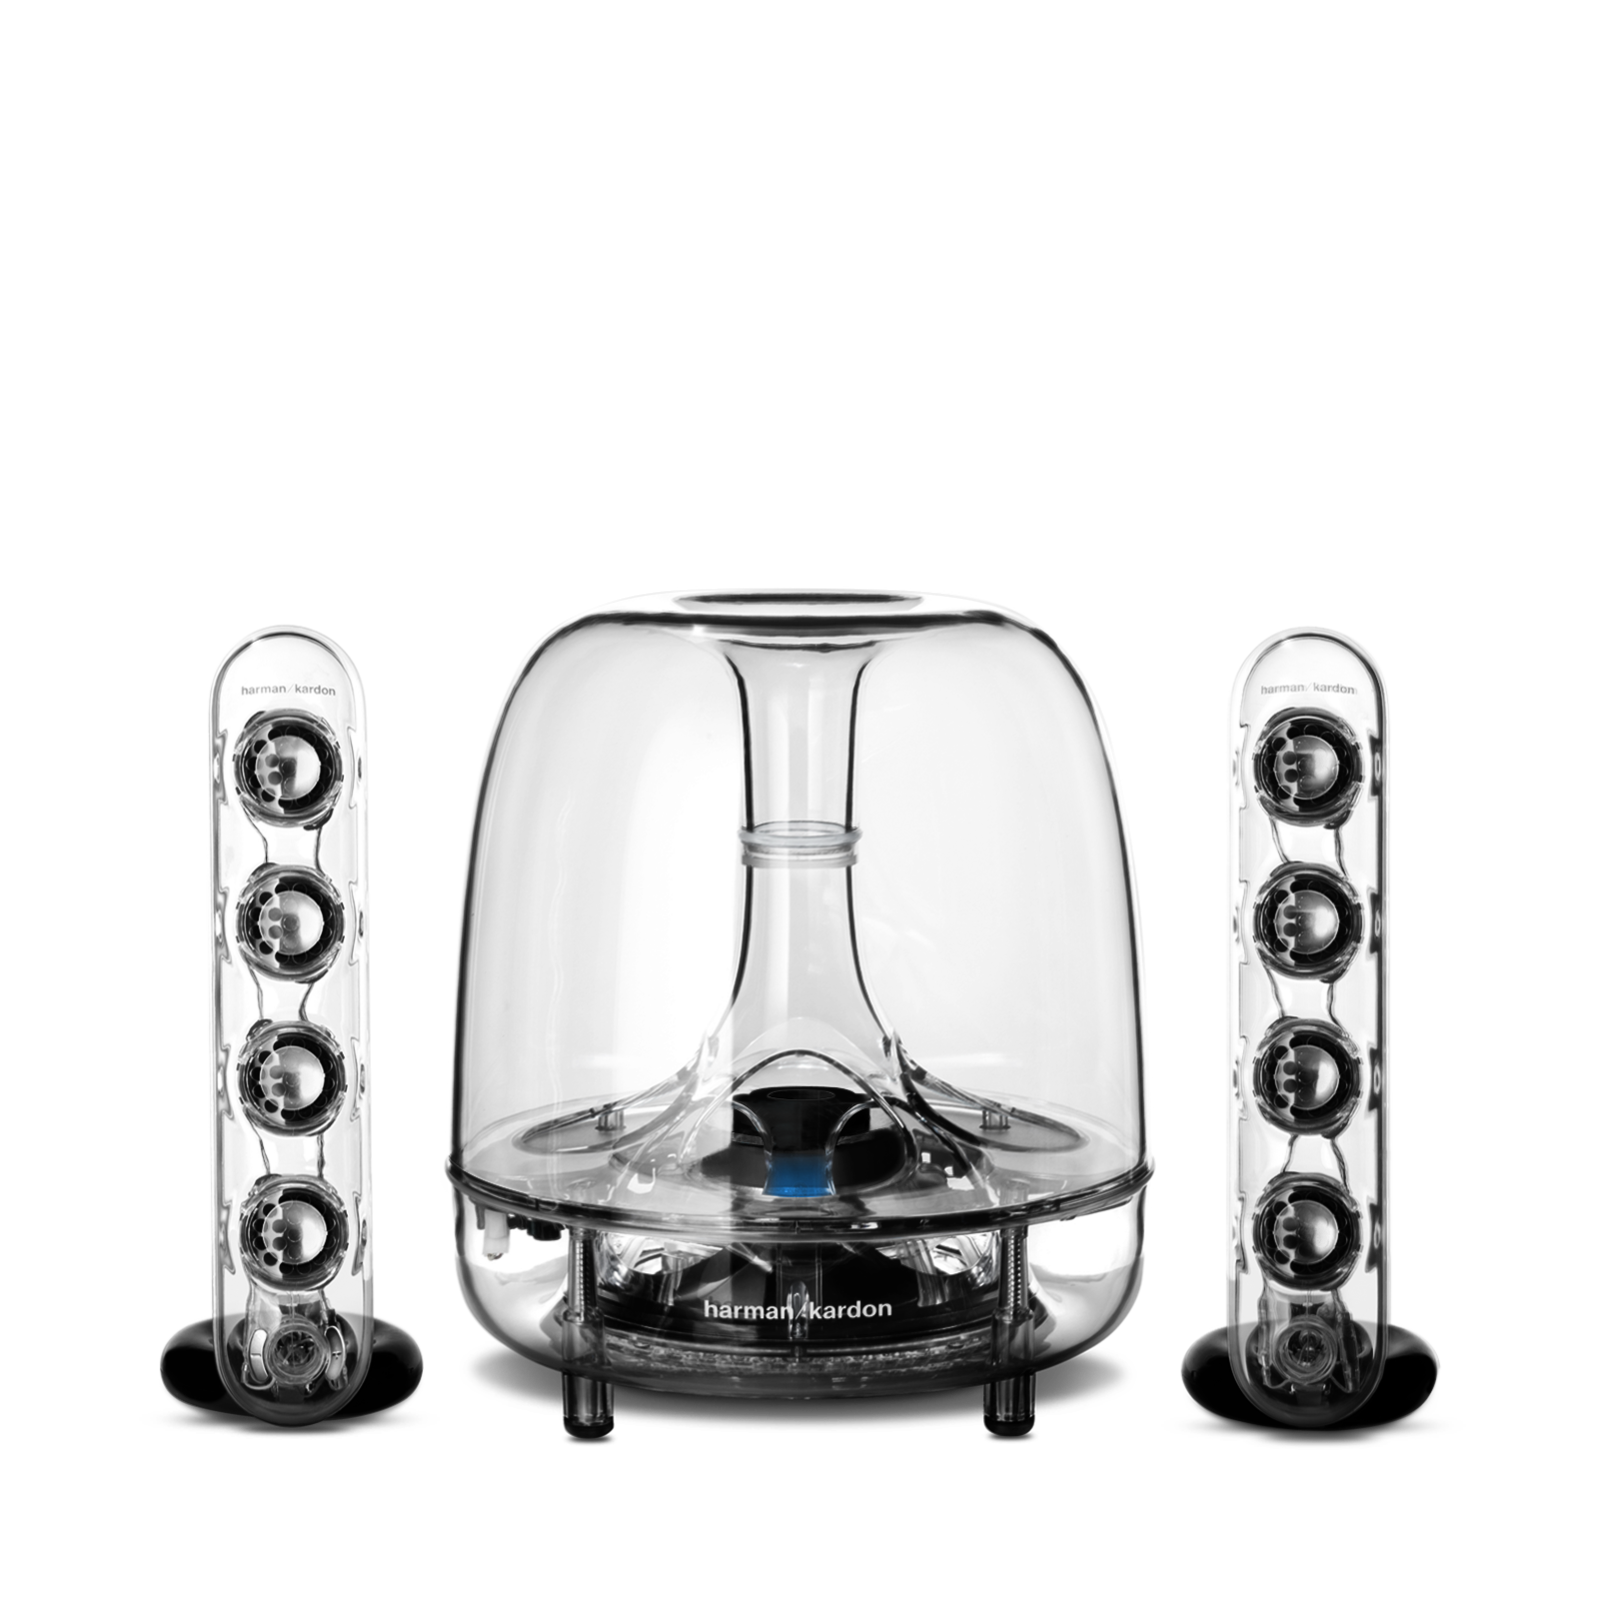 Harman Kardon Soundsticks Wireless Gaming Speakers